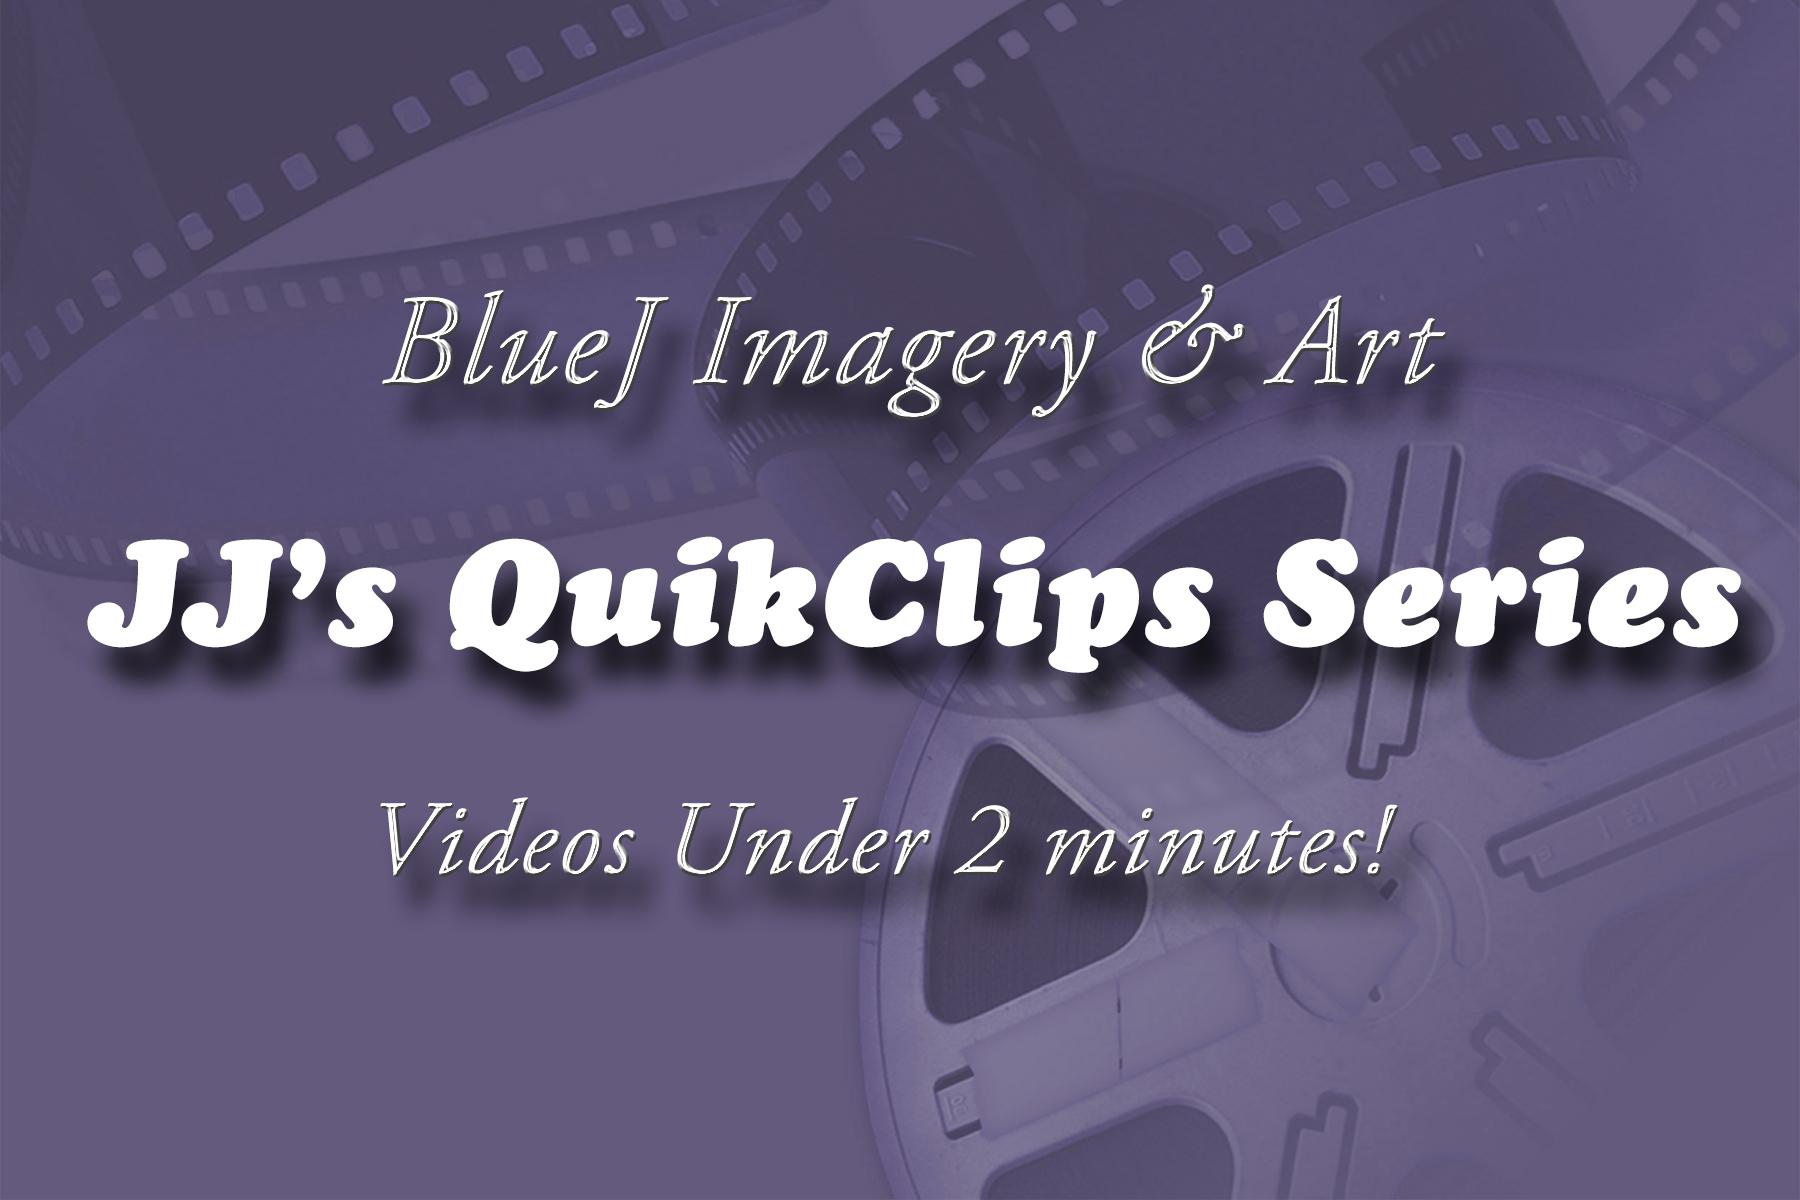 JJs QuikClips (Video Series)